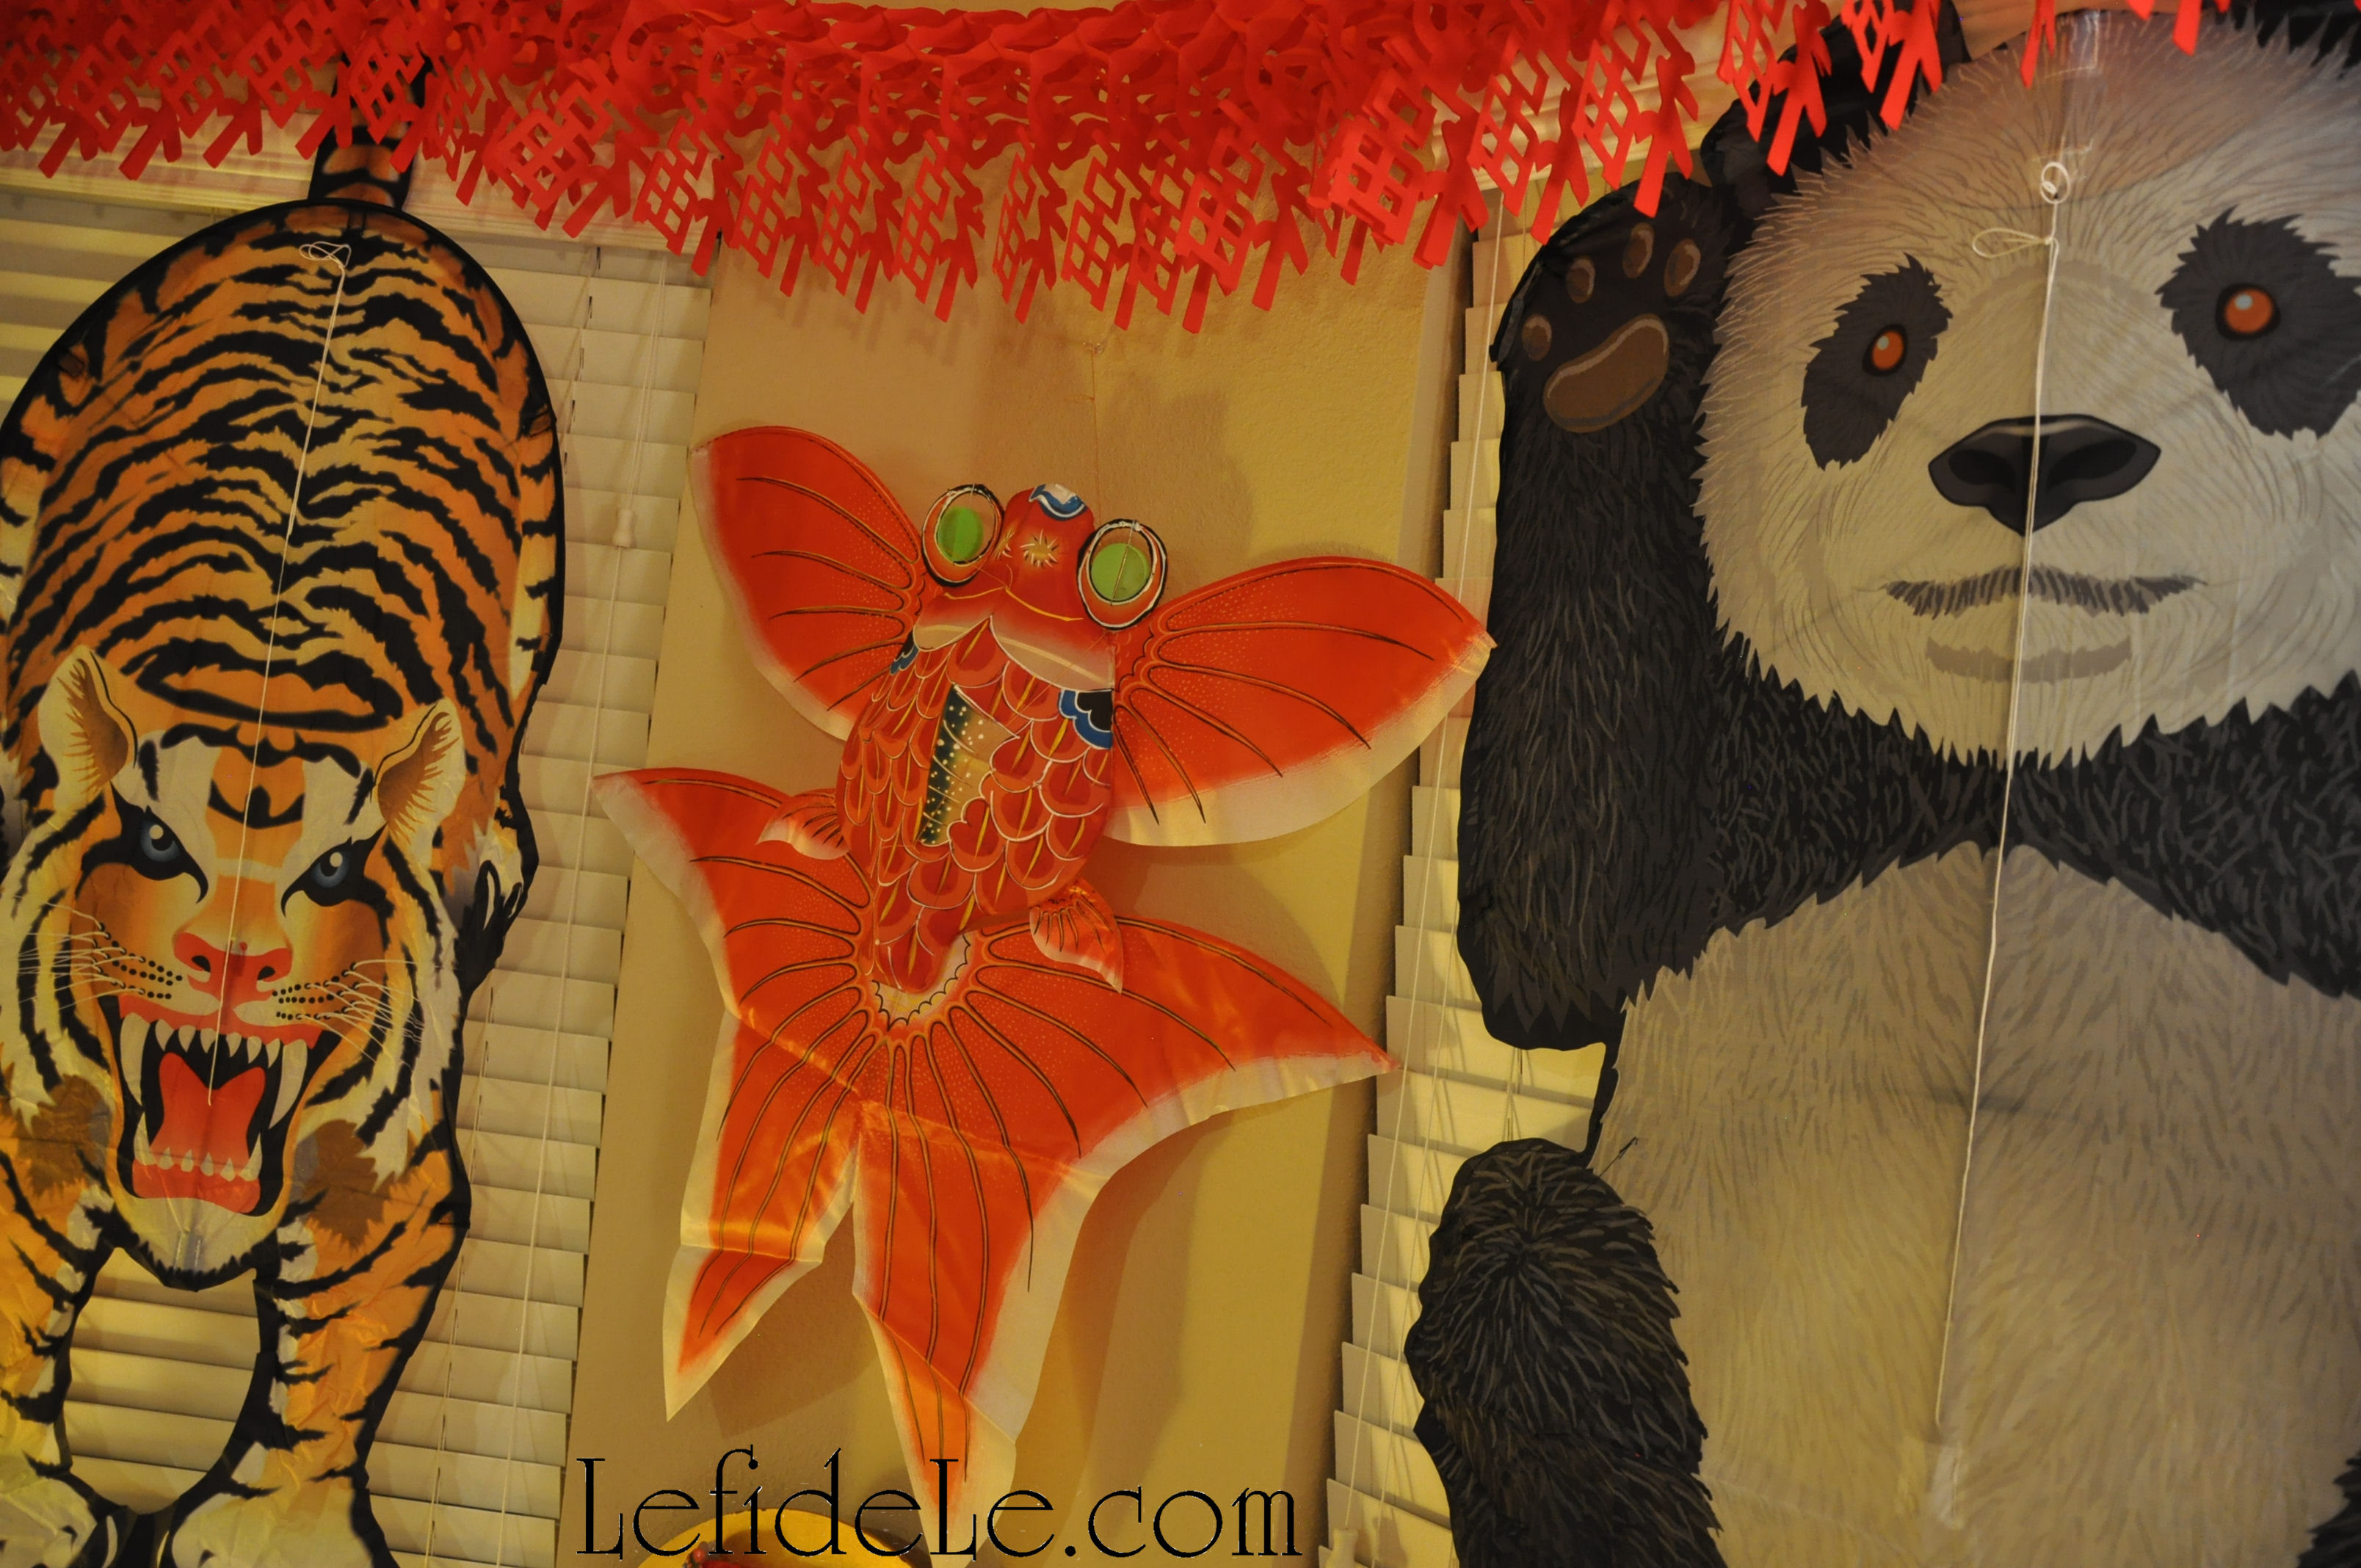 Modern chinese new year table setting -  Of Traditionally Made Bamboo Kites Red Phoenix Bird And Orange Karp Goldfish And Modern Kites Tiger And Panda Extend The New Year S Celebration